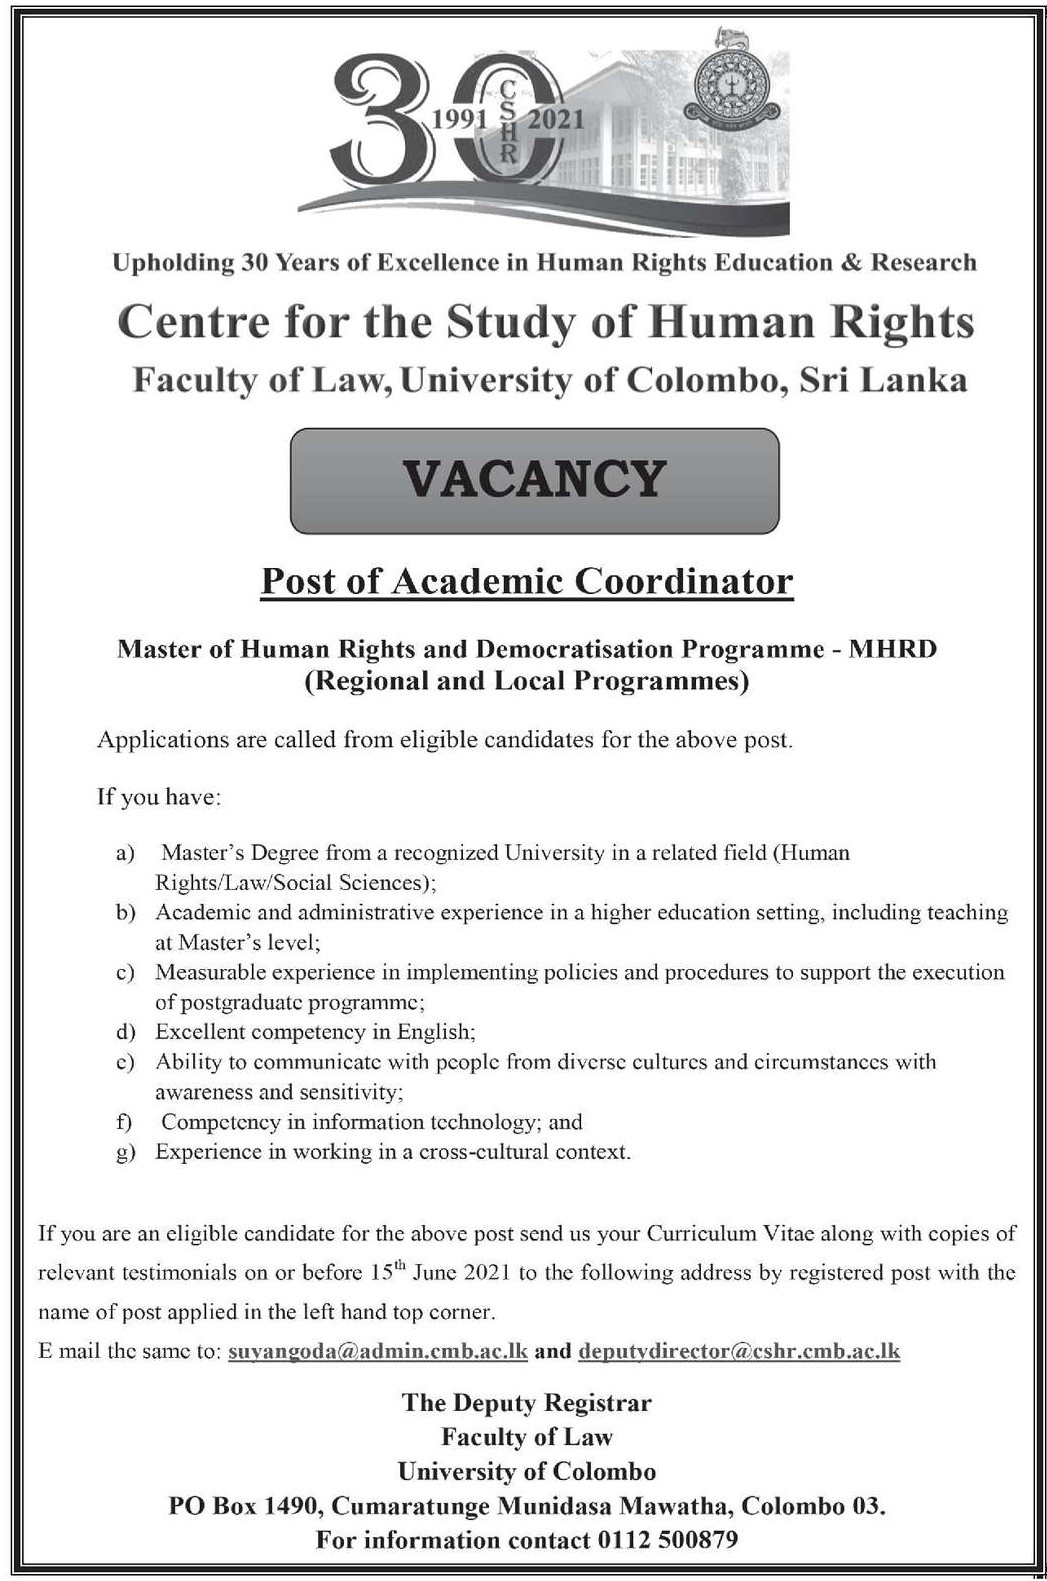 Academic Coordinator - Faculty of Law - University of Colombo